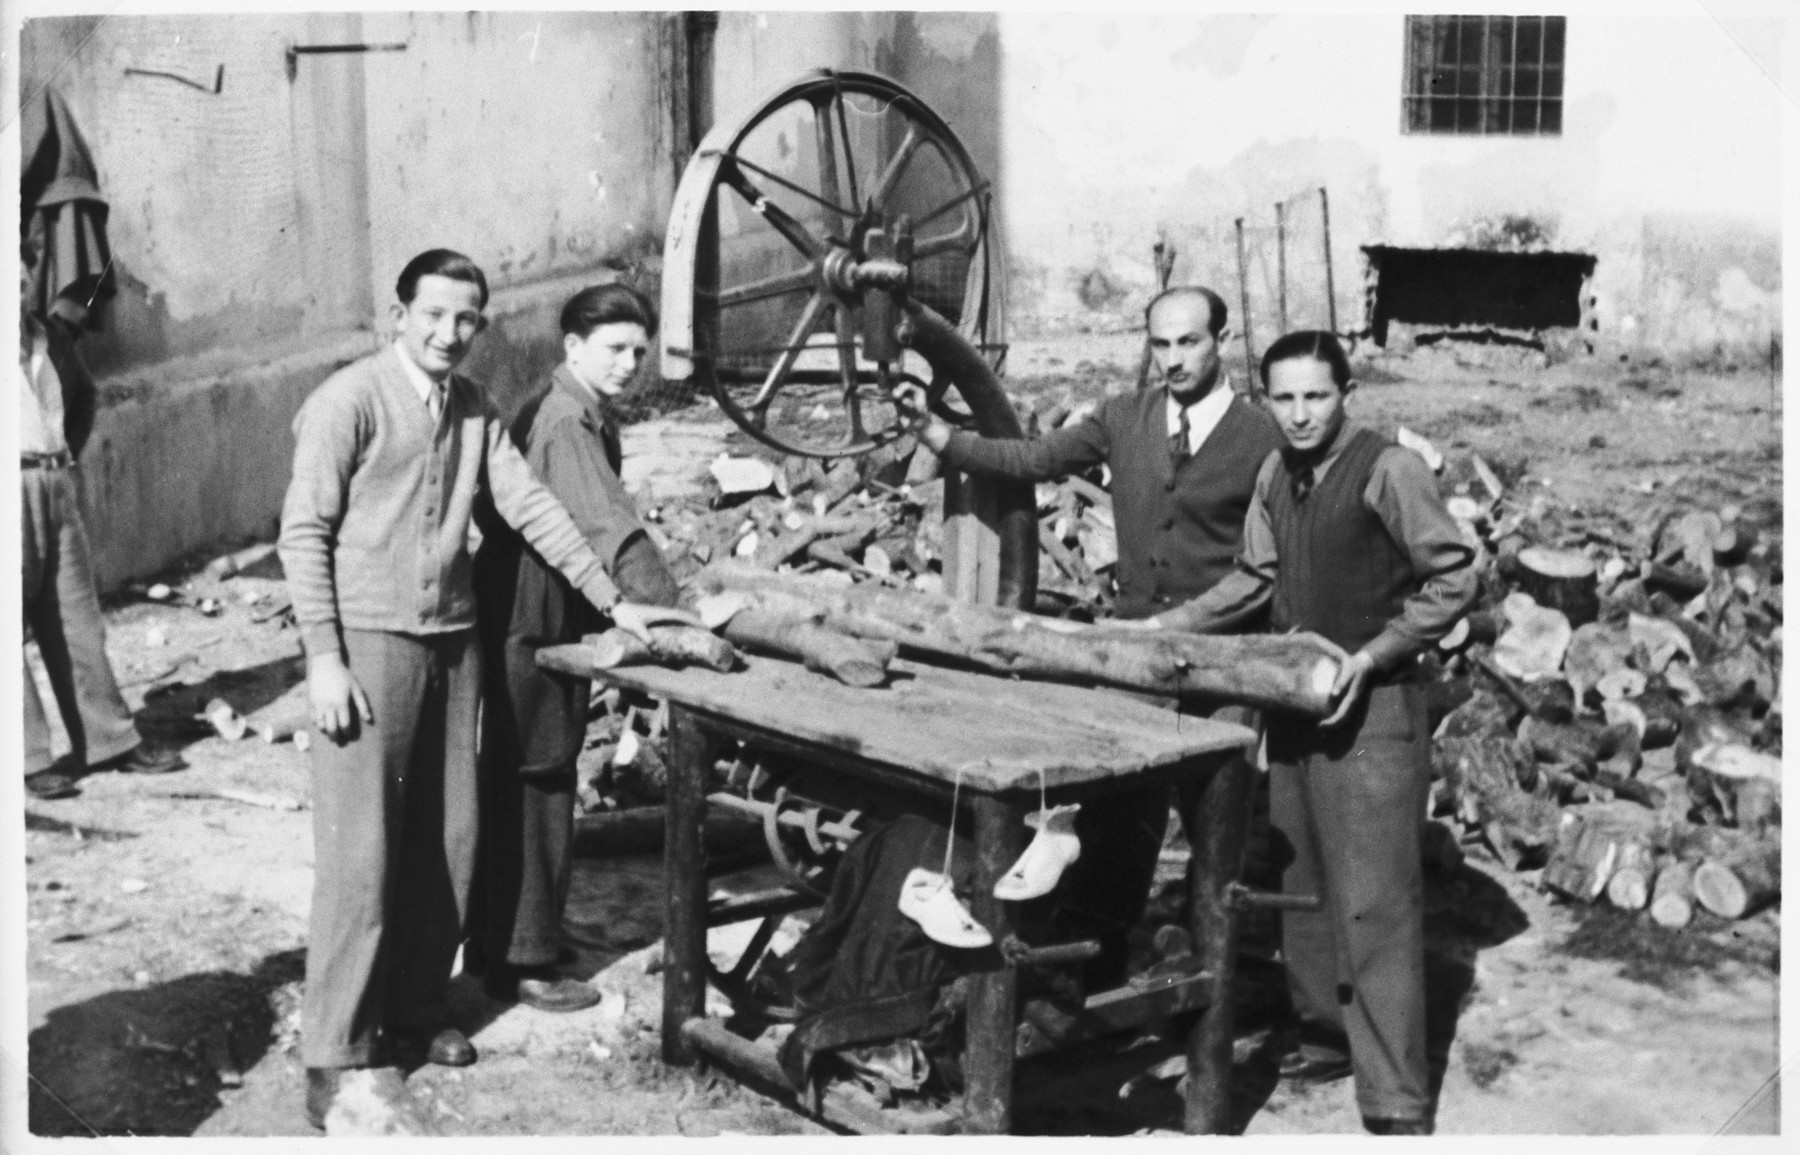 Four Jewish men cut lumber in the Cremona DP camp.  Shie Zoltak is standing second from the left.